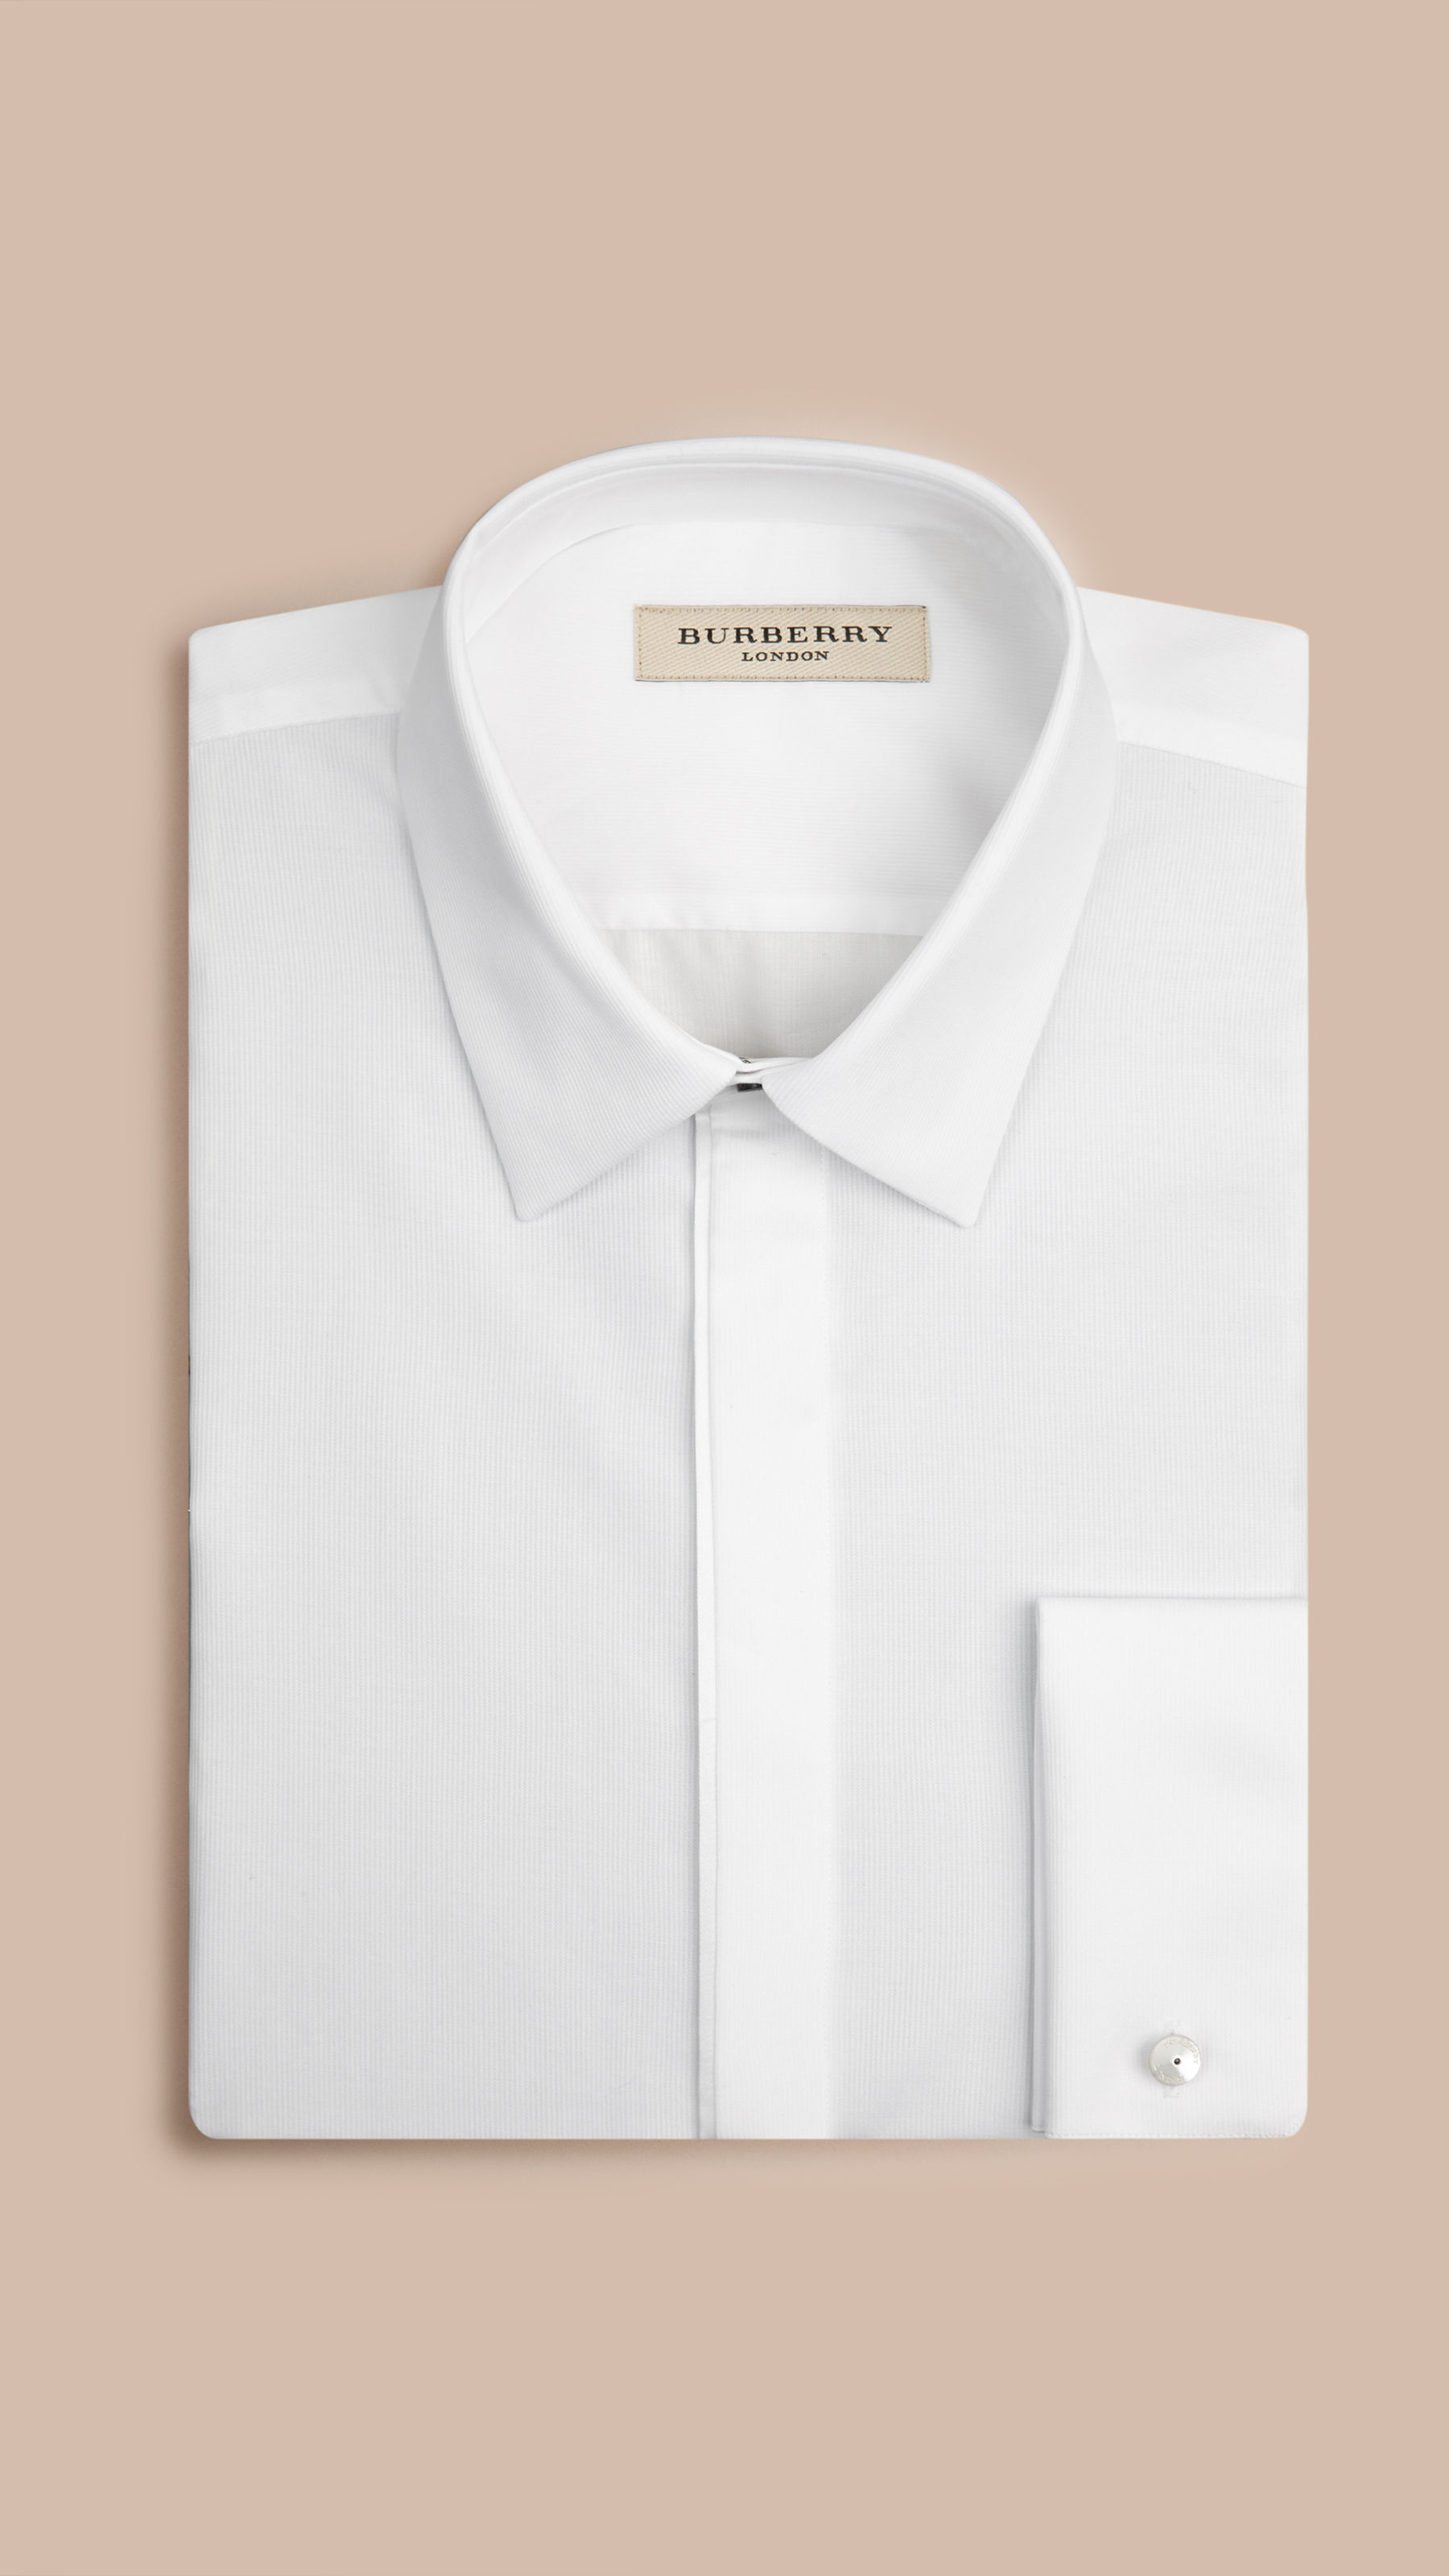 Burberry Slim Fit Double Cuff Cotton Dress Shirt In White